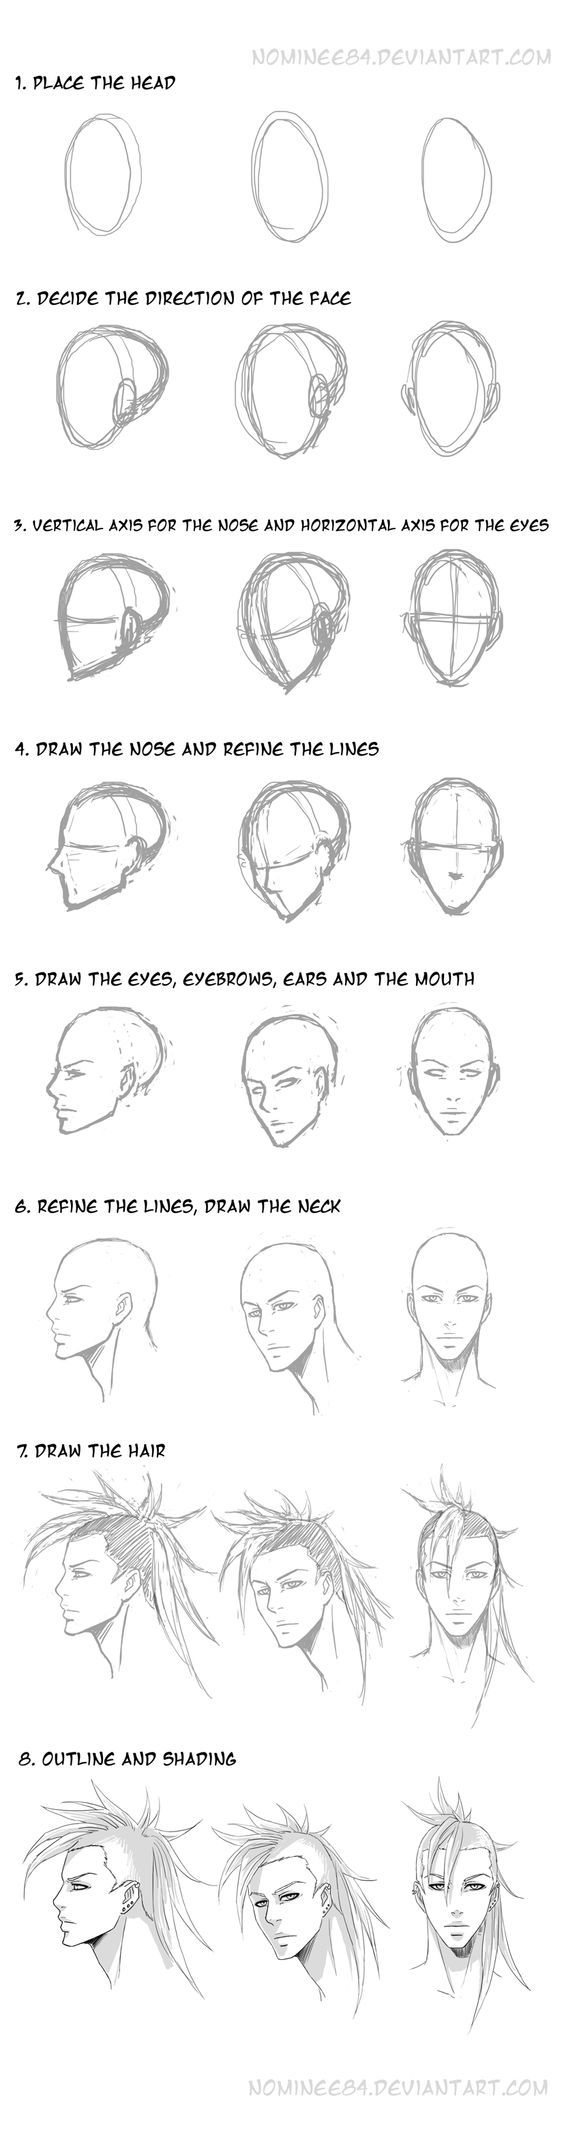 how i draw head n face by =nominee84 on deviantART: